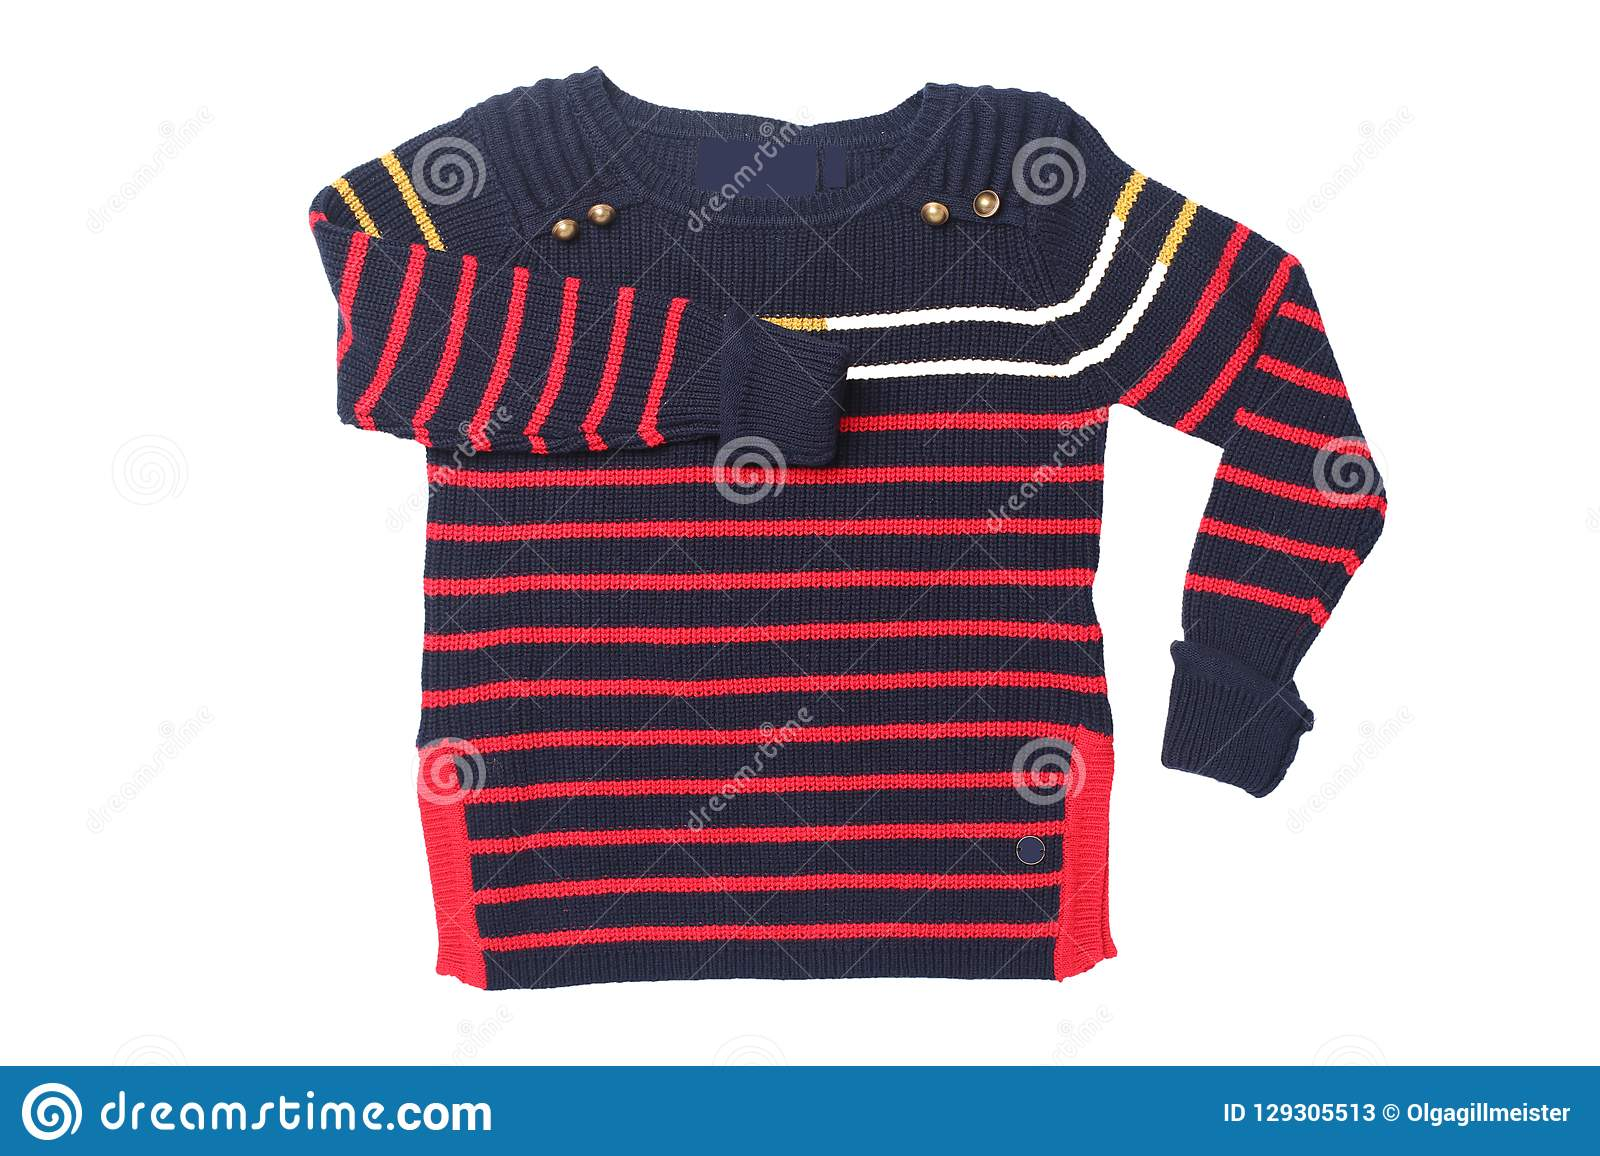 f063ed47643a Autumn And Winter Children Clothes. A Red Black Striped Cozy War ...